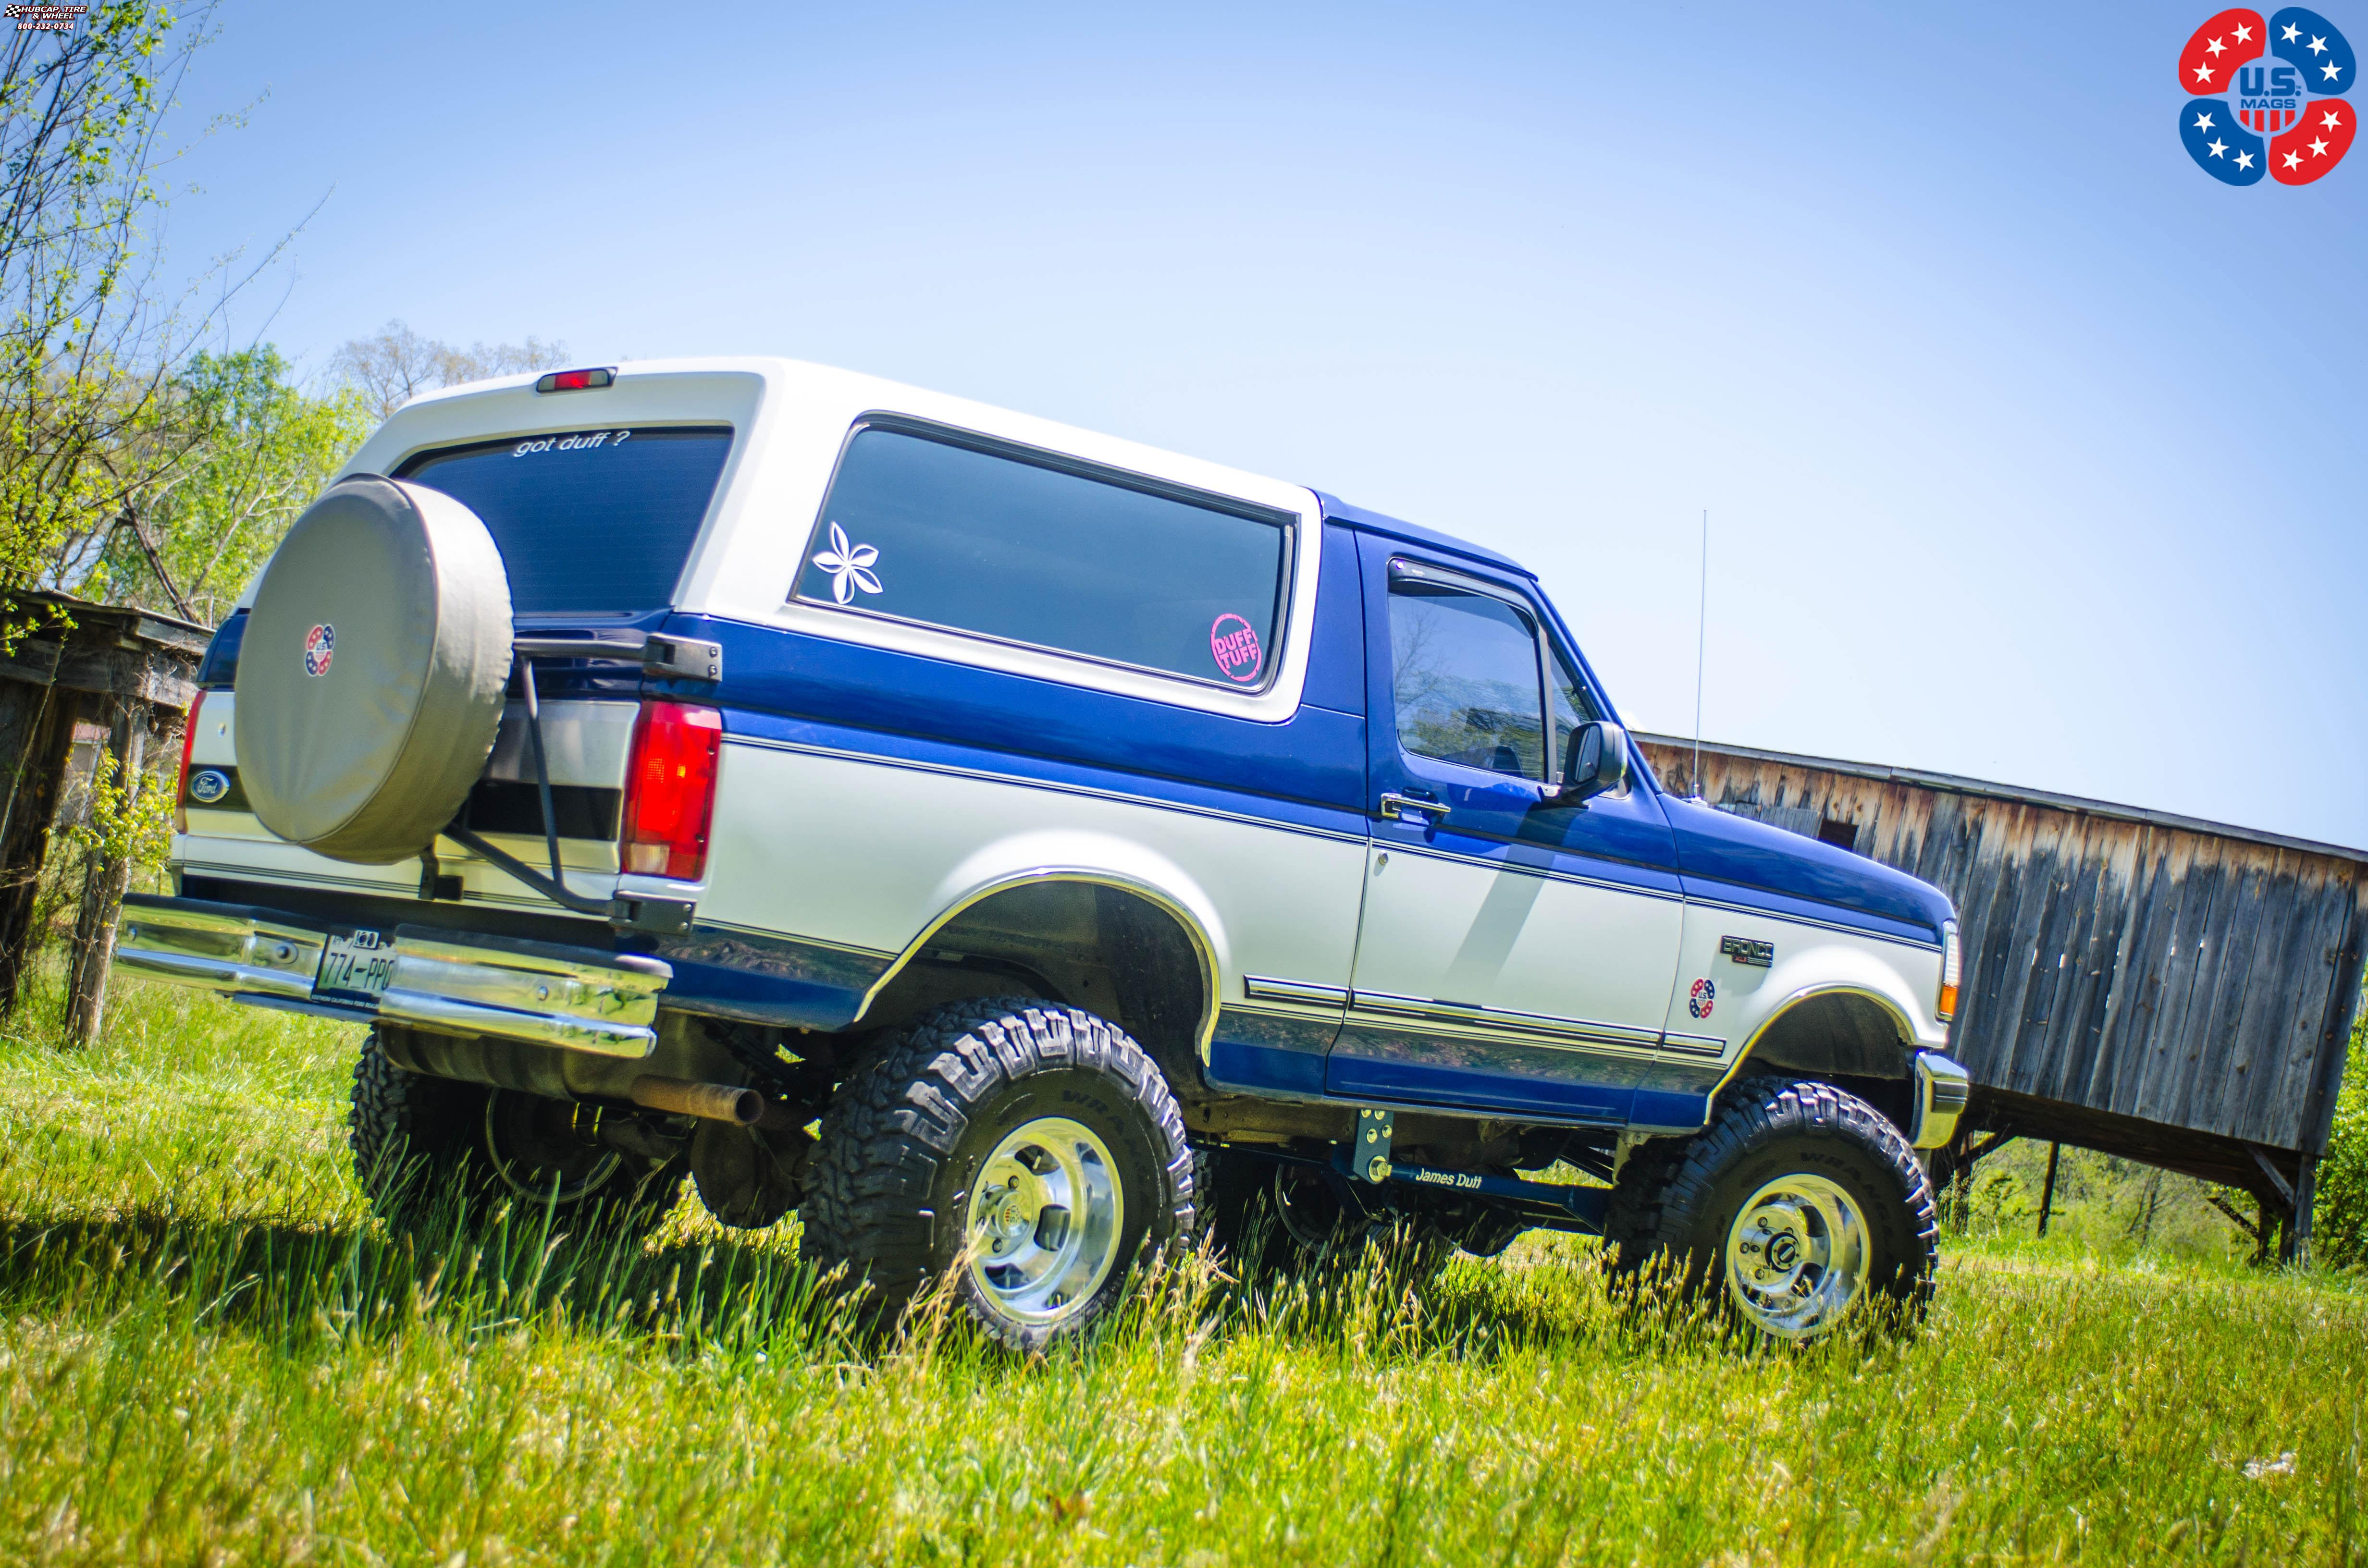 Ford bronco us mags indy u101 truck 15x10 polished wheels and rims